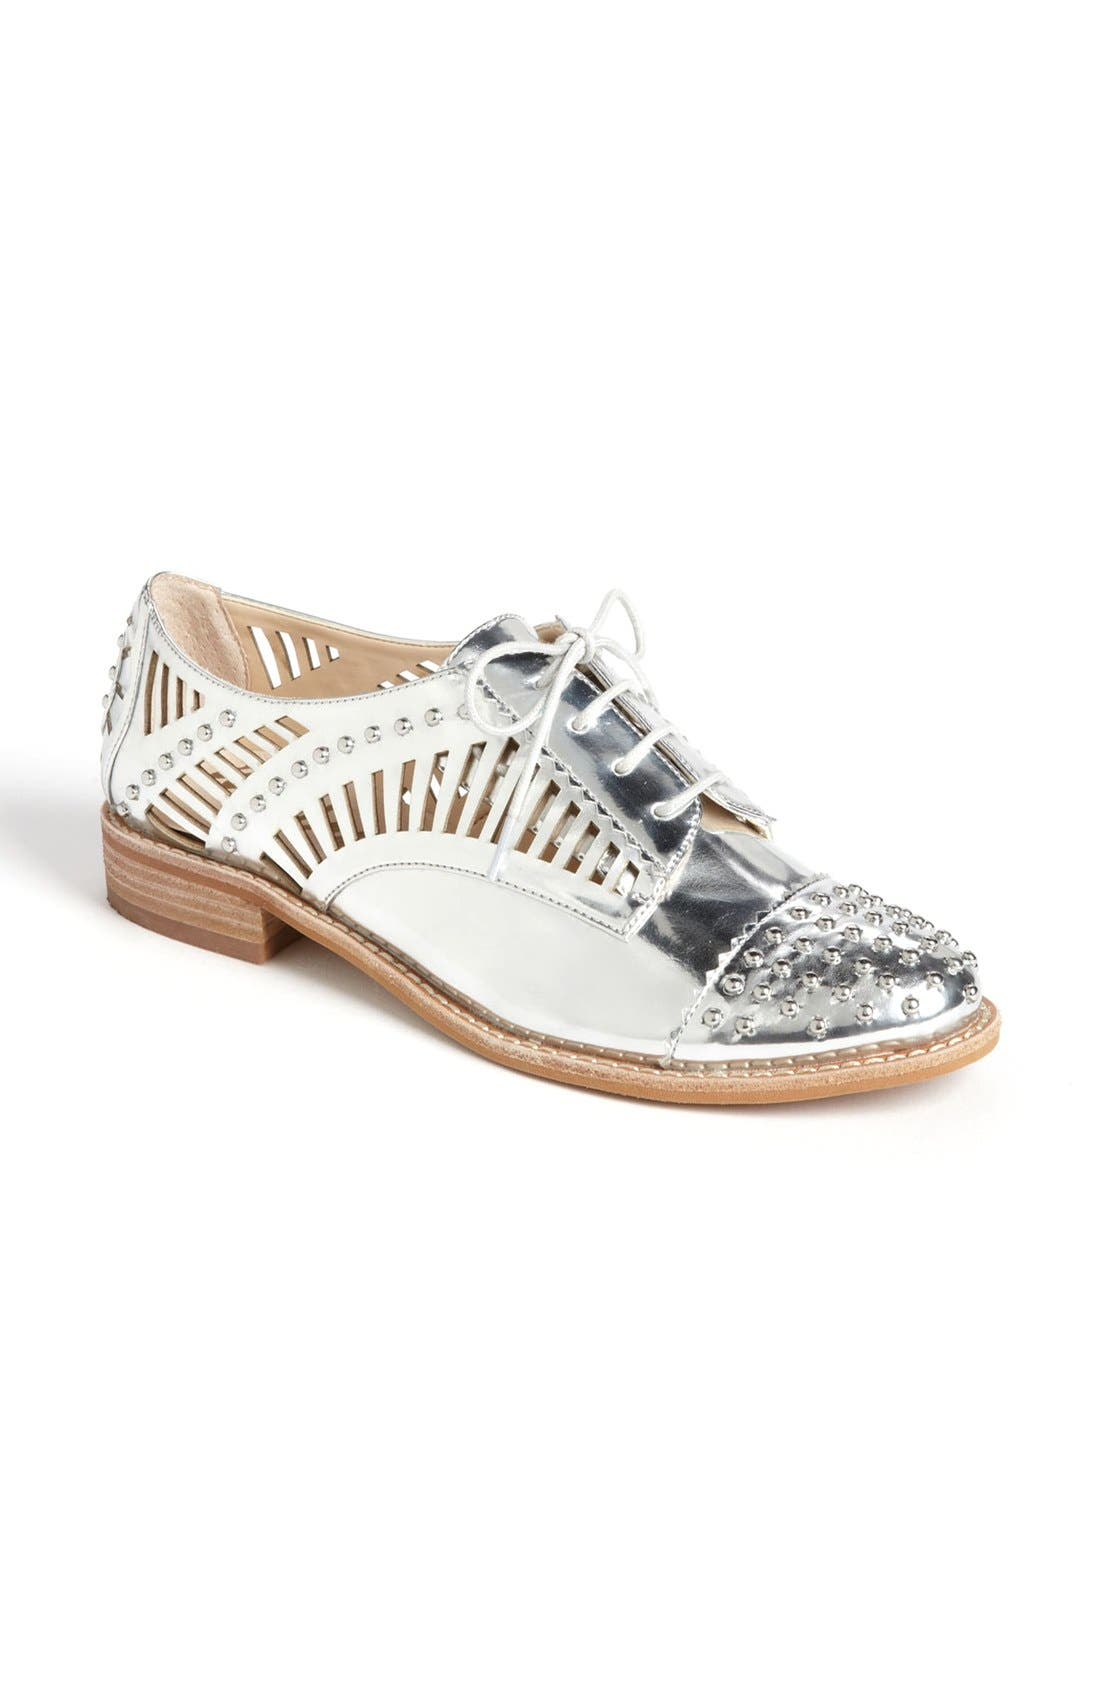 Alternate Image 1 Selected - Sam Edelman 'Jayden' Oxford